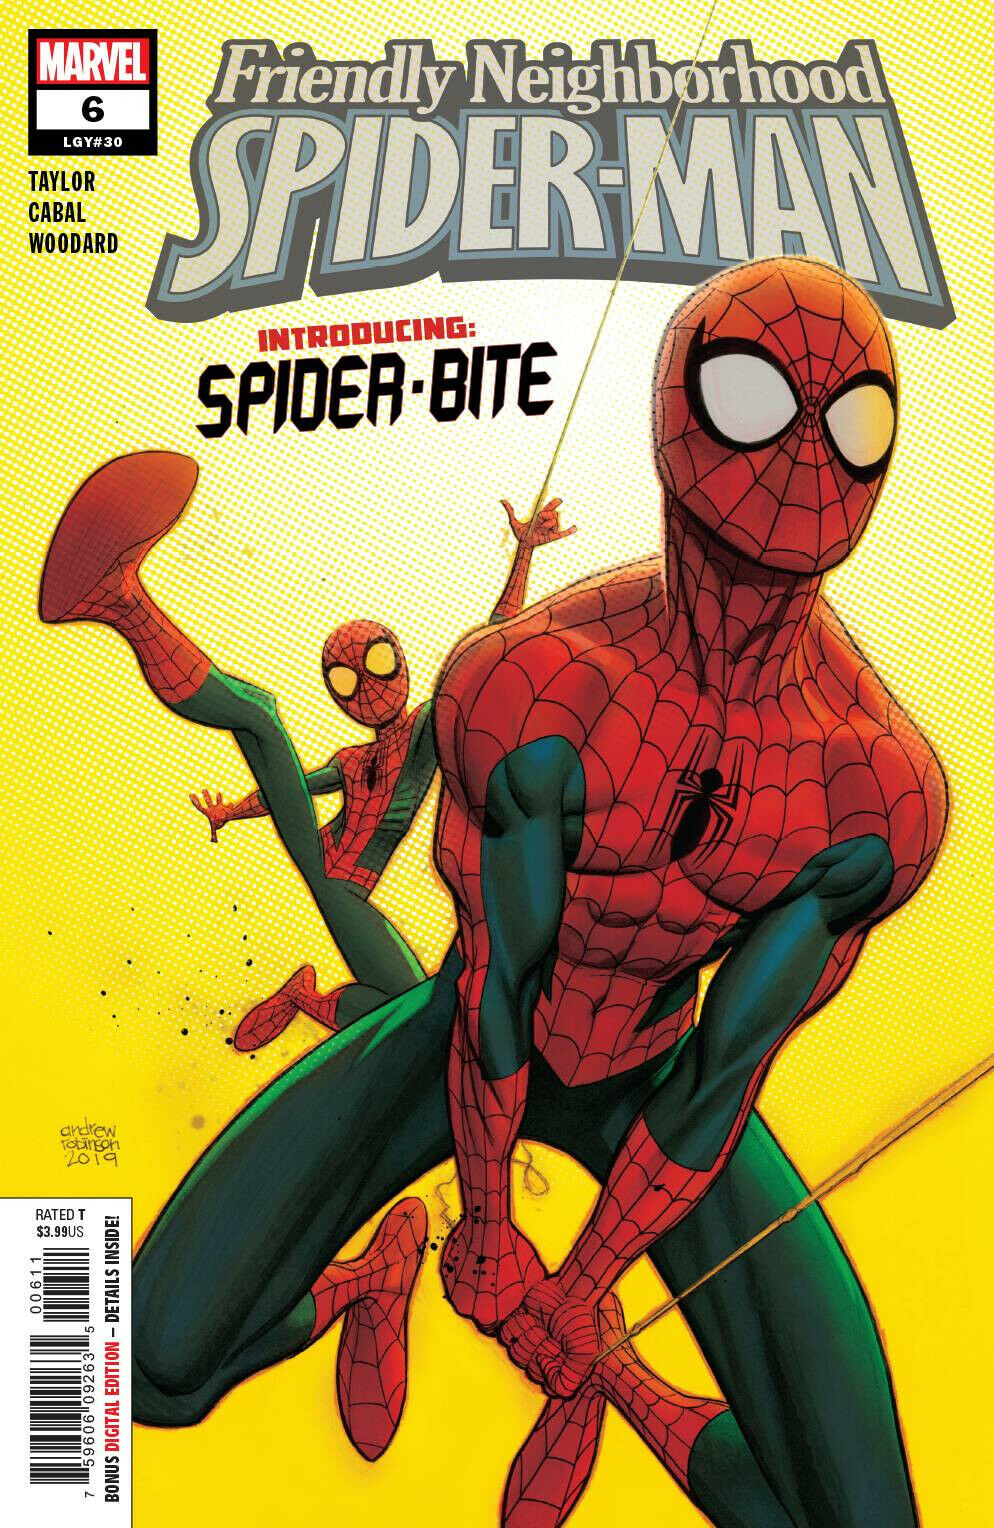 FRIENDLY NEIGHBORHOOD SPIDER-MAN 6 SPIDER-BITE 1st APPEARANCE FIRST SOLD OUT